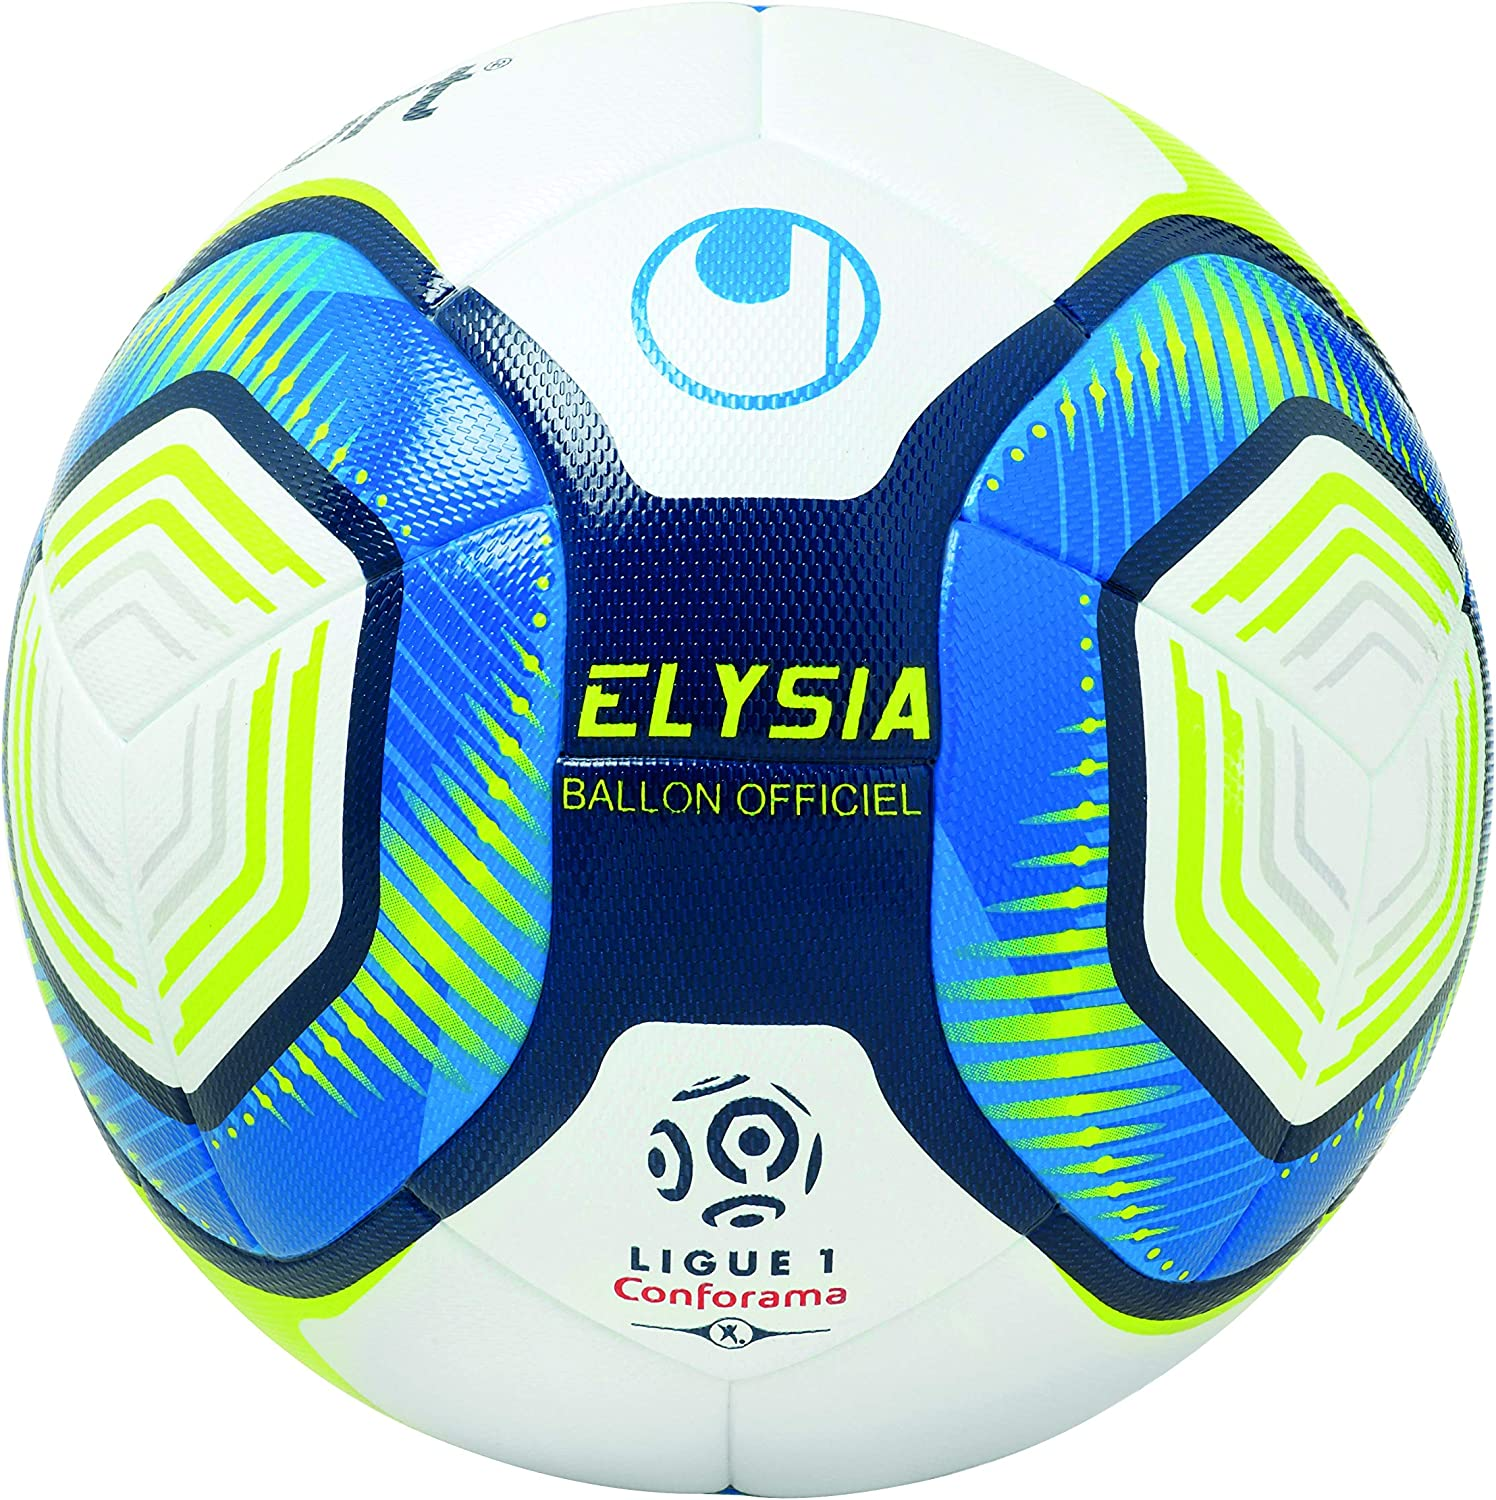 uhlsport Elysia Ballon OFFICIEL, Unisex Adulto, Blanc/Metallic ...